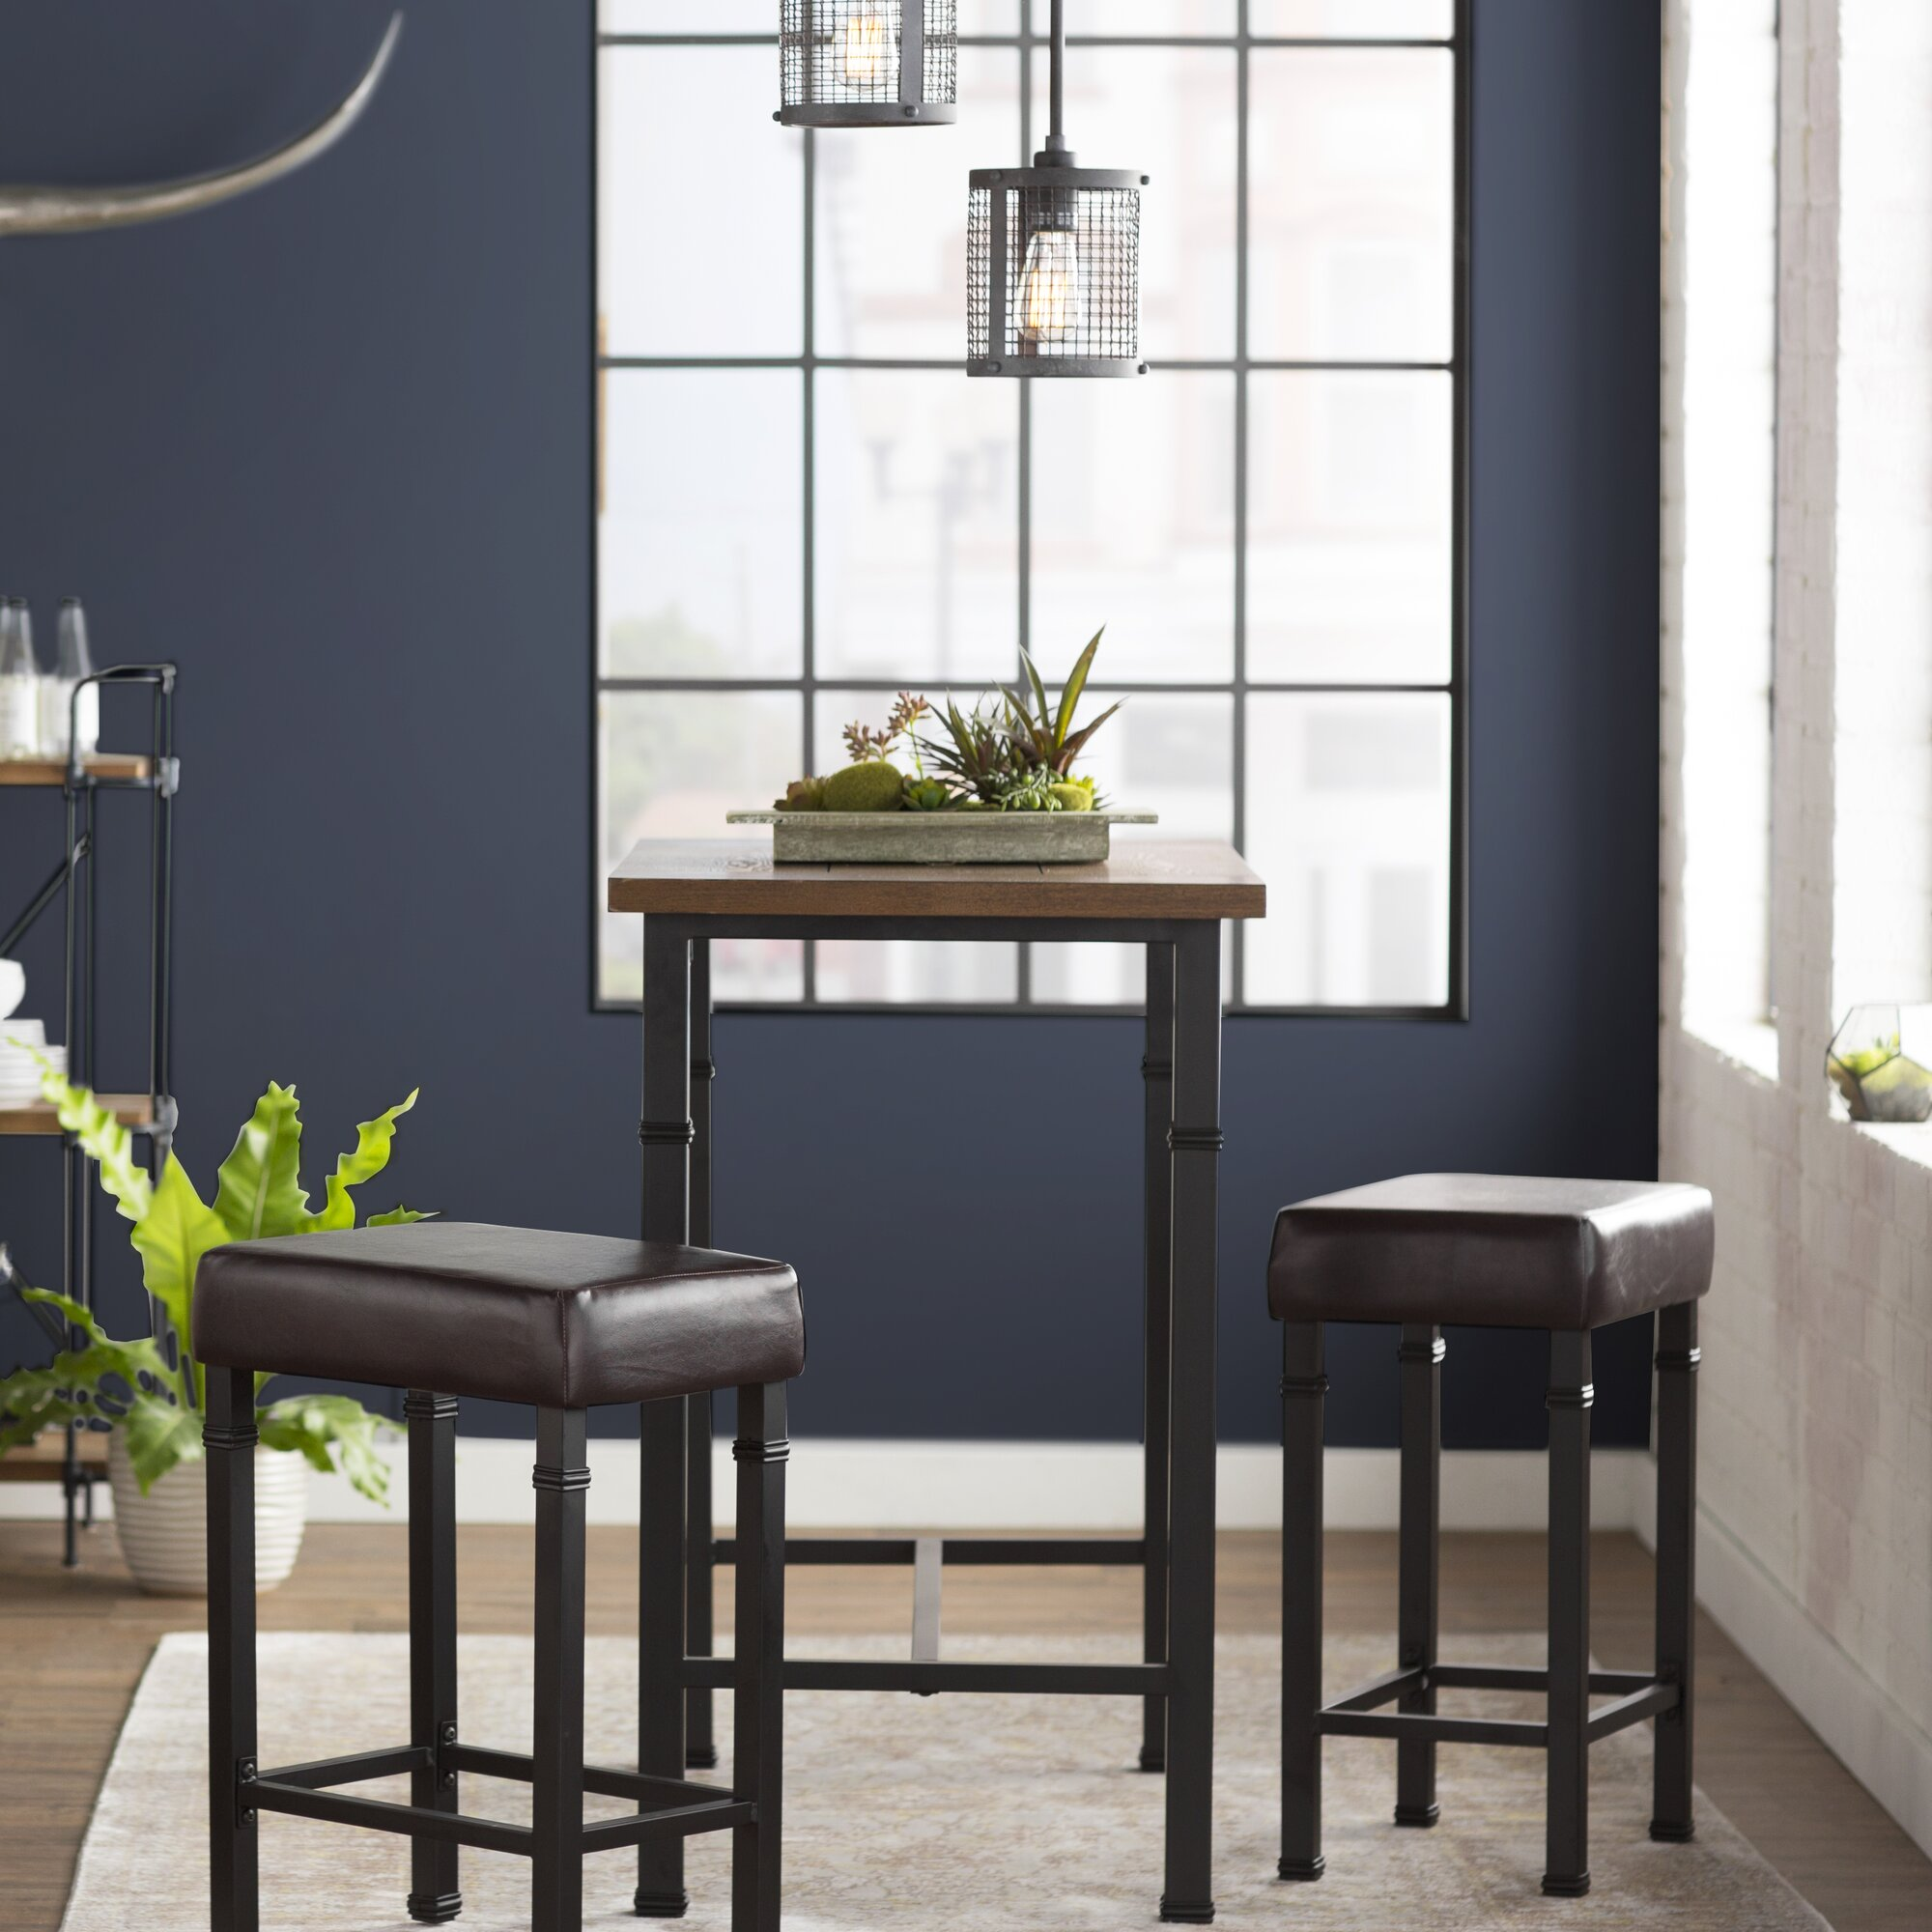 Kitchen bar table sets - Sevigny 3 Piece Pub Table Set